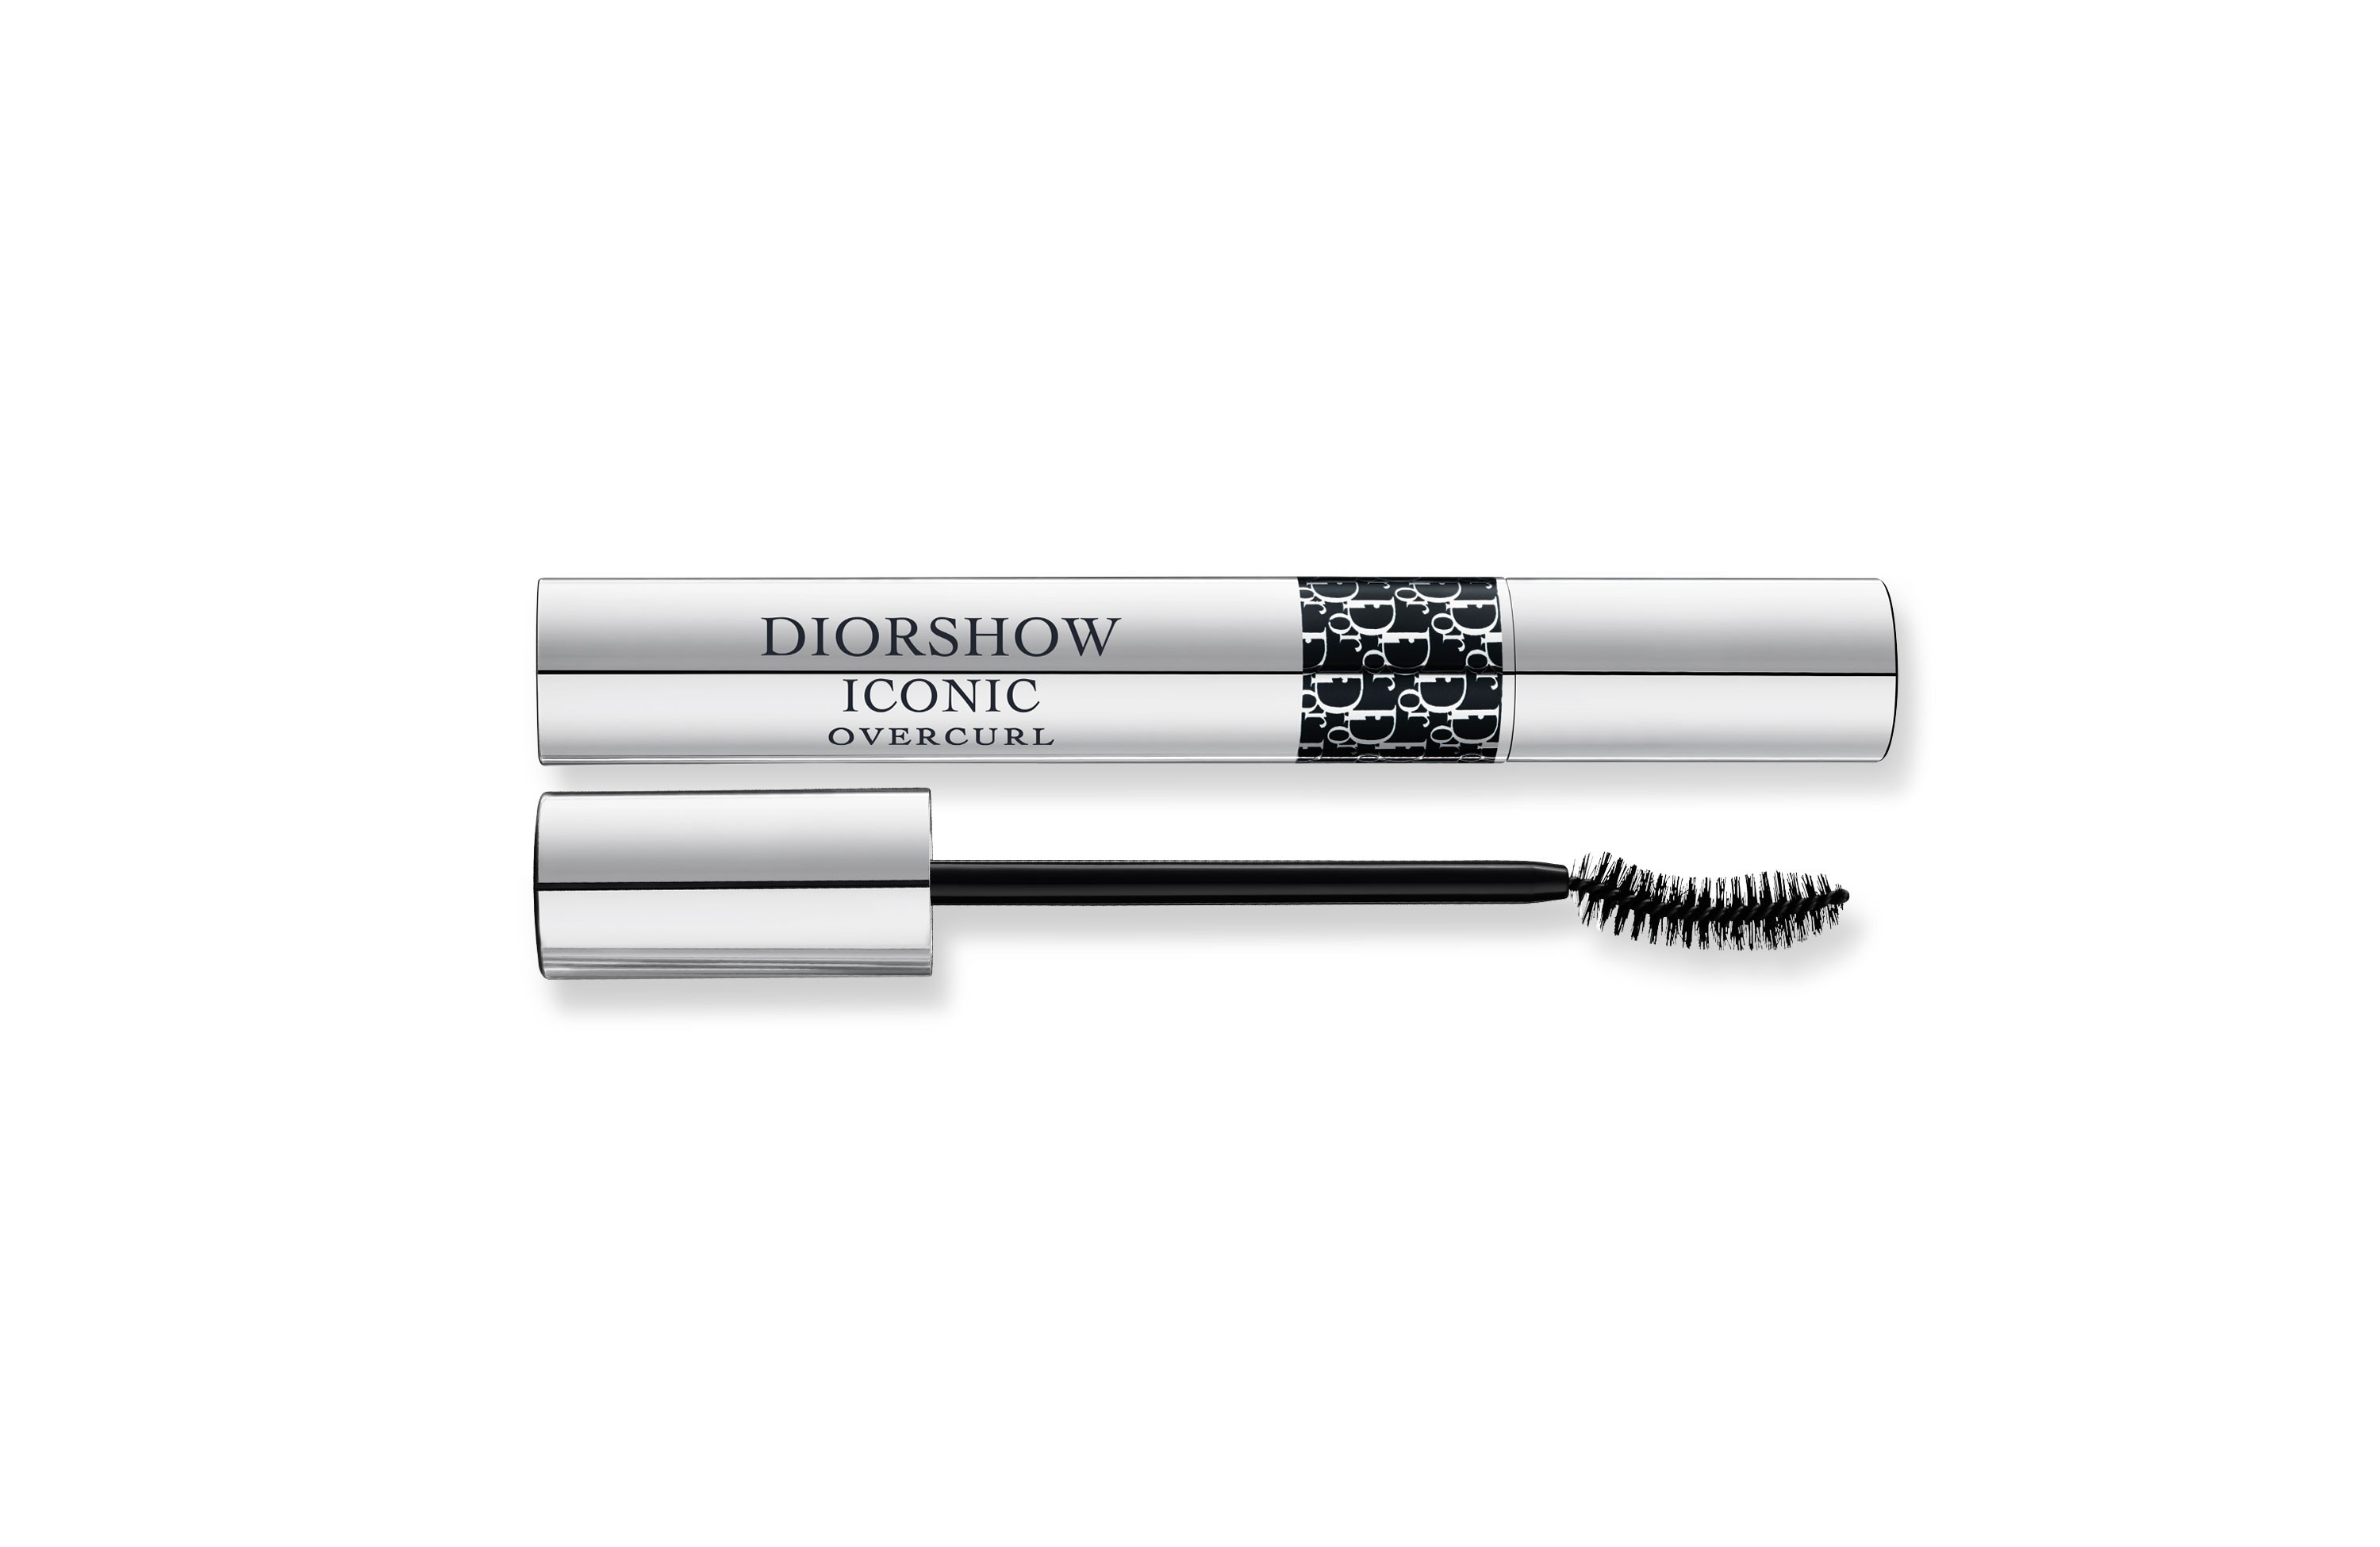 Dior Diorshow Iconic Overcurl Spectacular Volume and Curl Professional Mascara